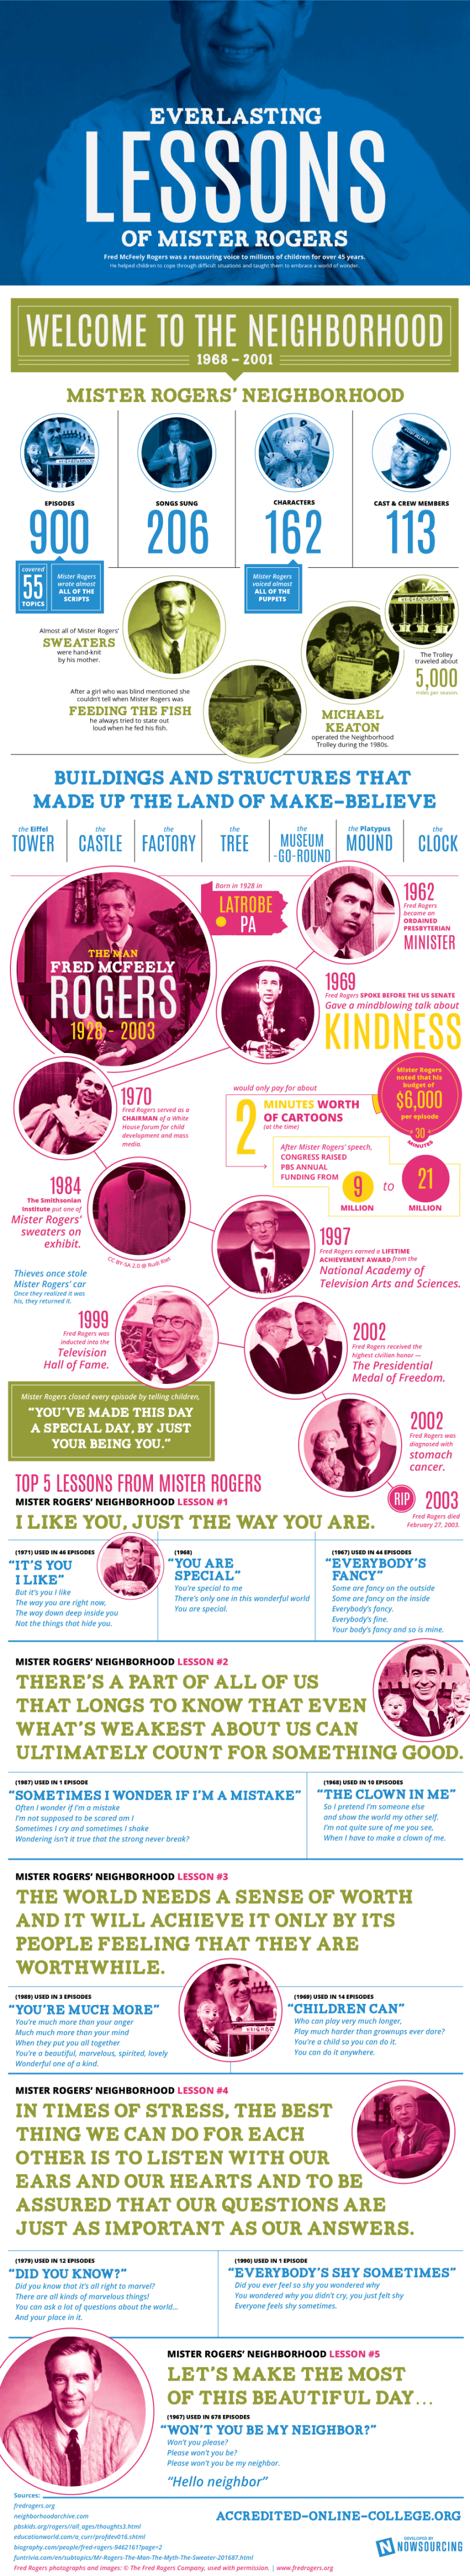 Everlasting Lessons of Mister Rogers